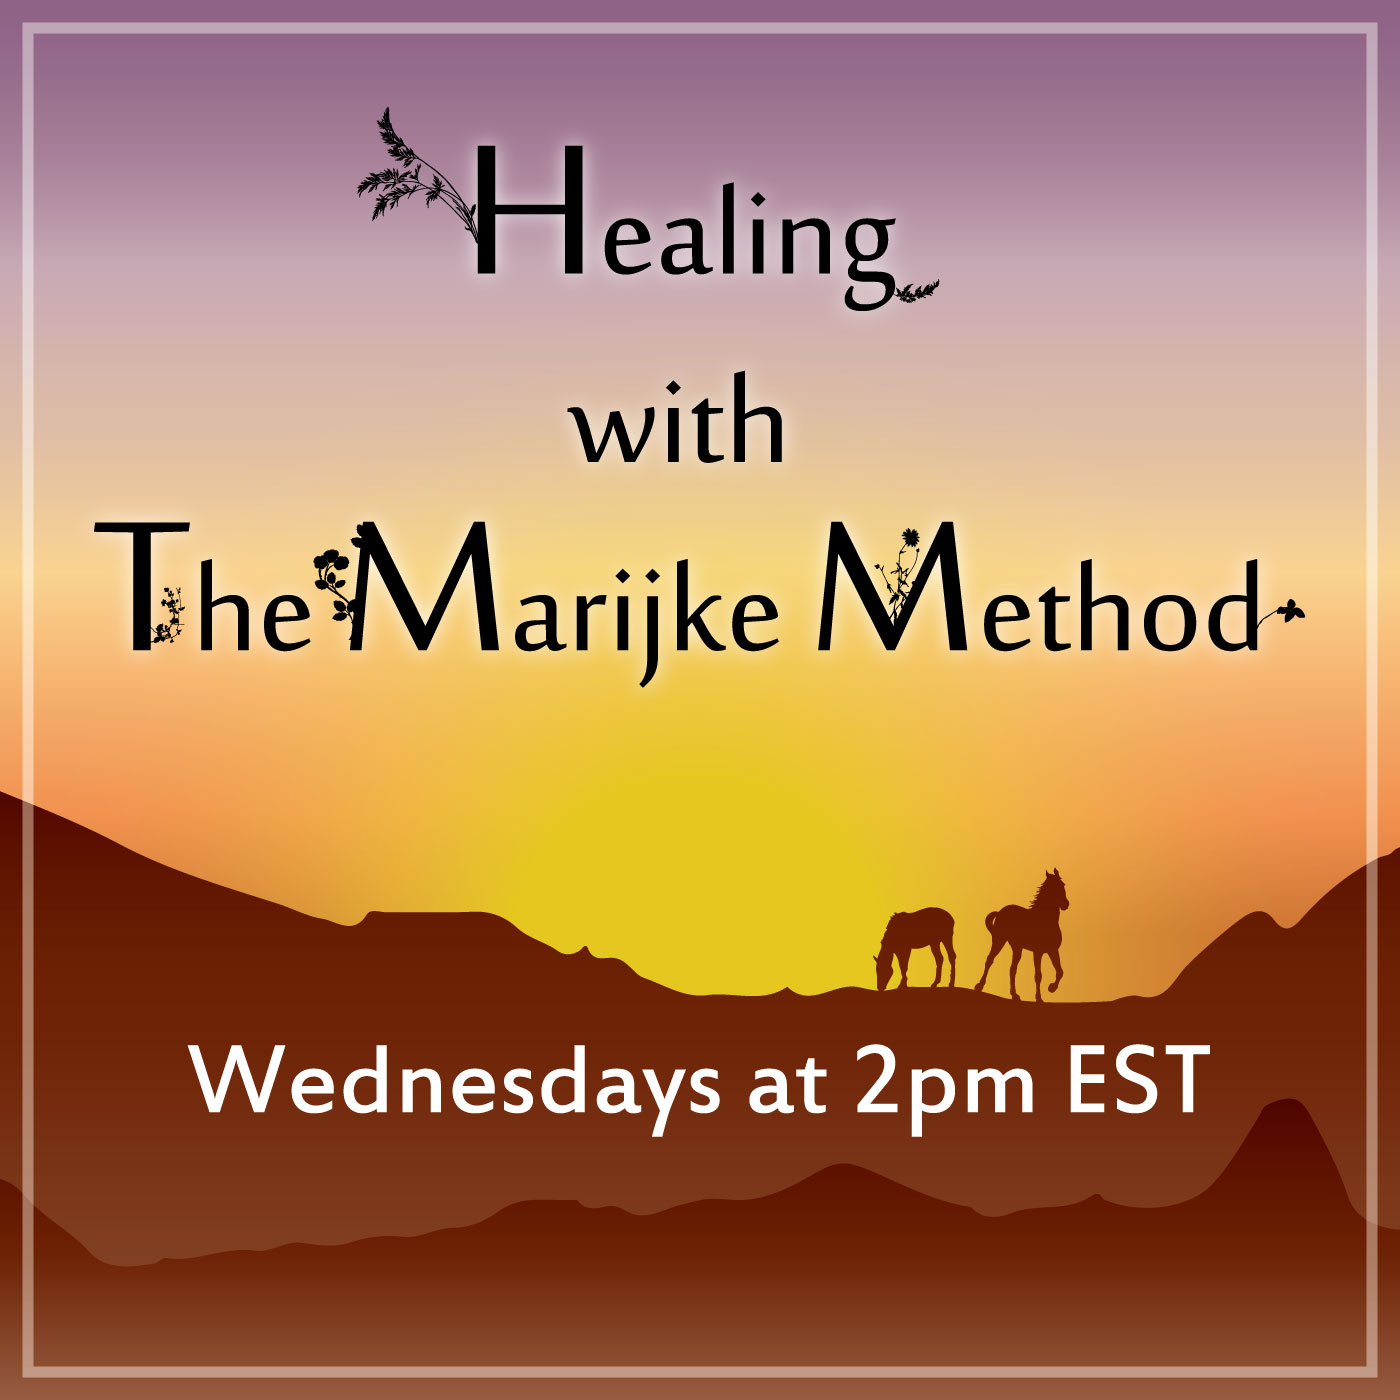 Healing with The Marijke Method